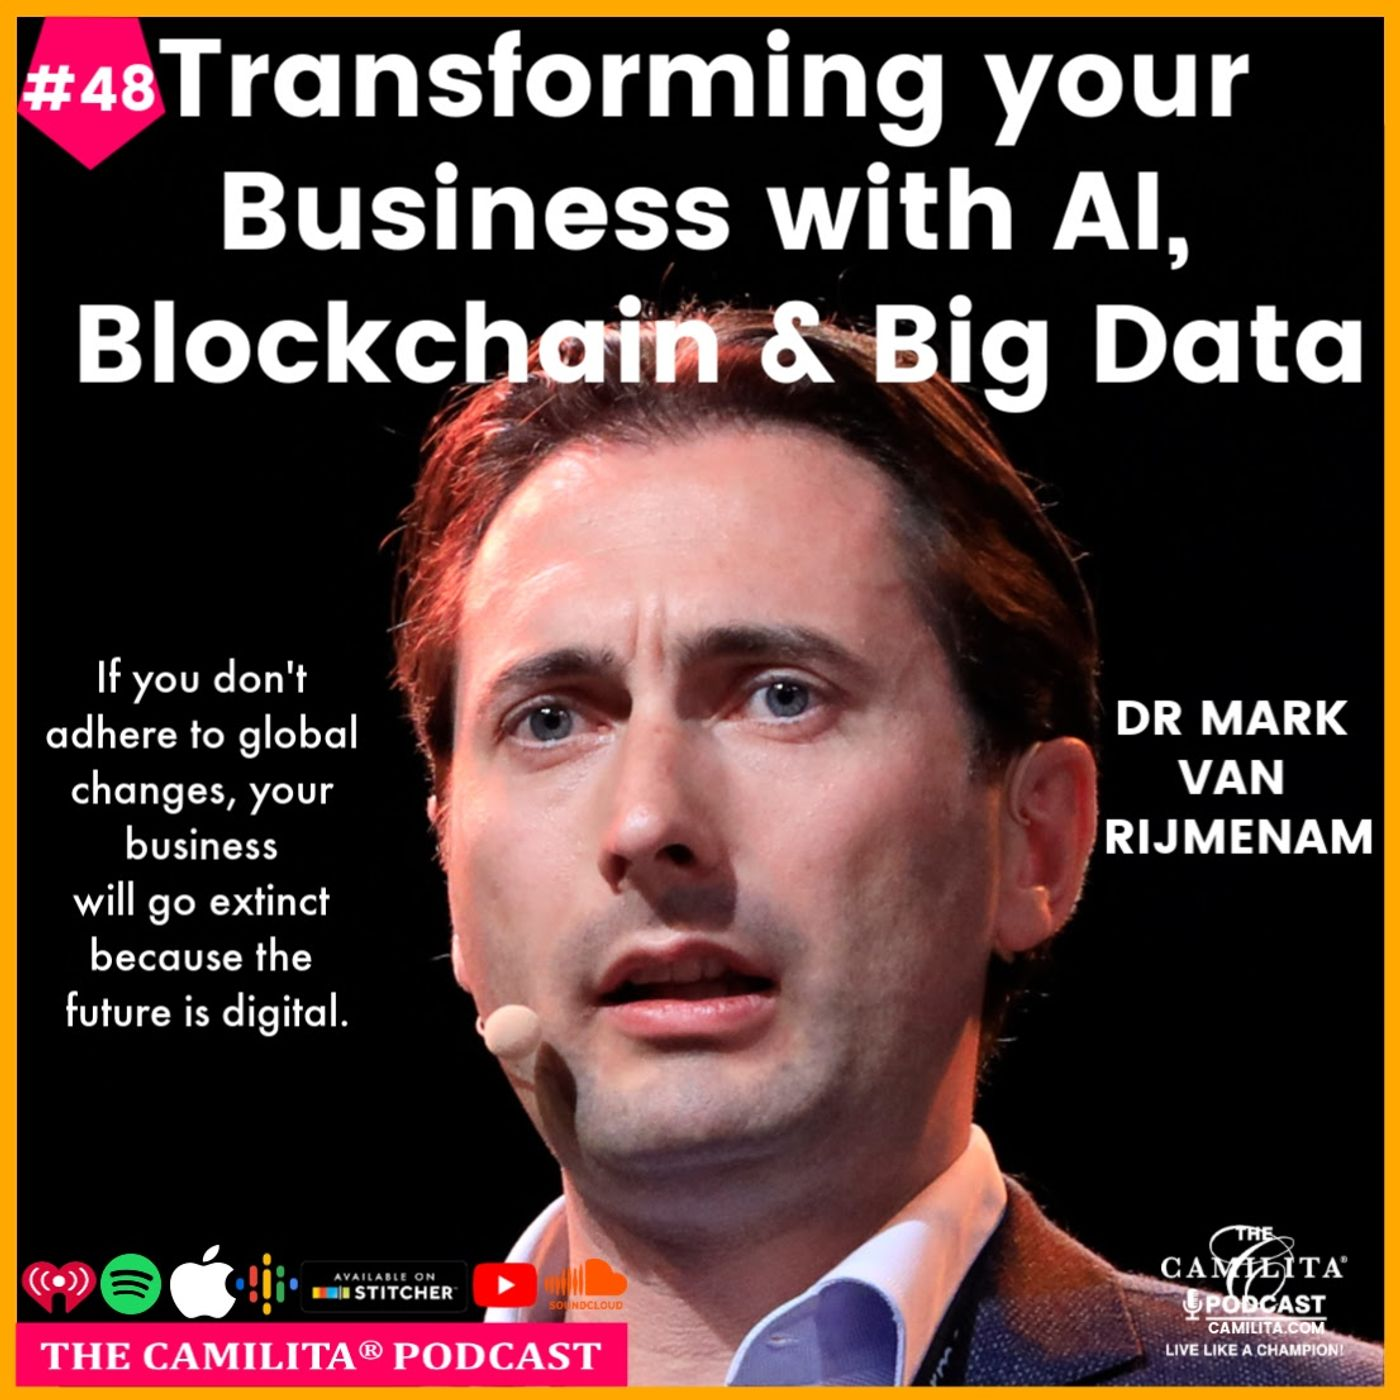 48: Dr Mark van Rijmenam | Transforming Your Business with AI, Blockchain & Big Data